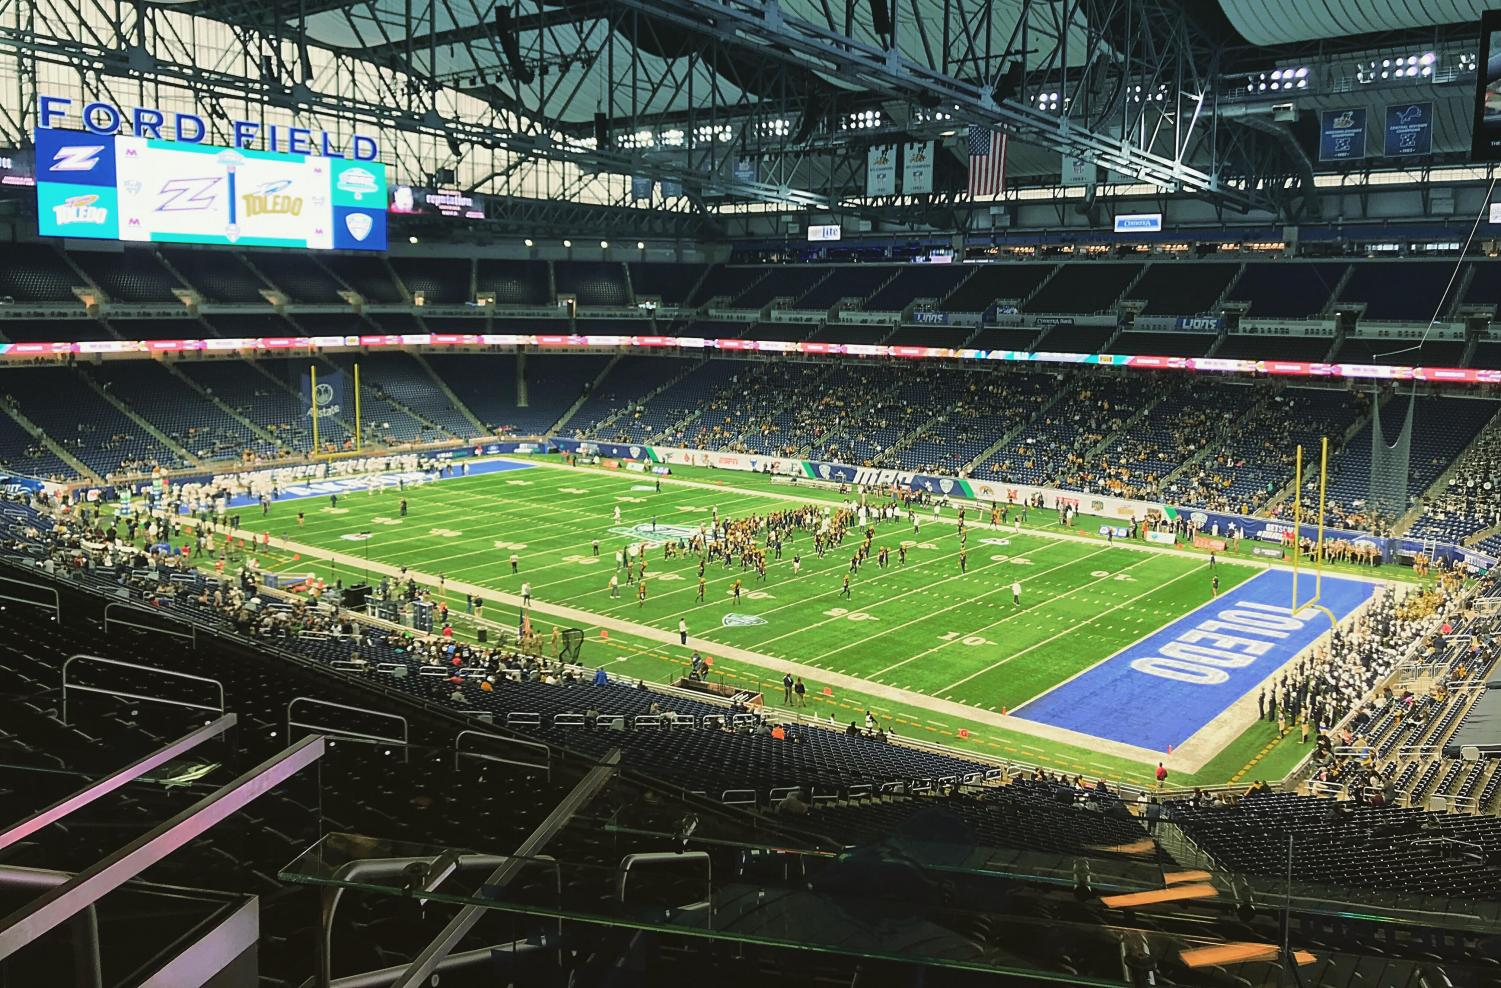 The scene at Ford Field prior to kickoff between the Akron Zips and Toledo Rockets on Saturday.